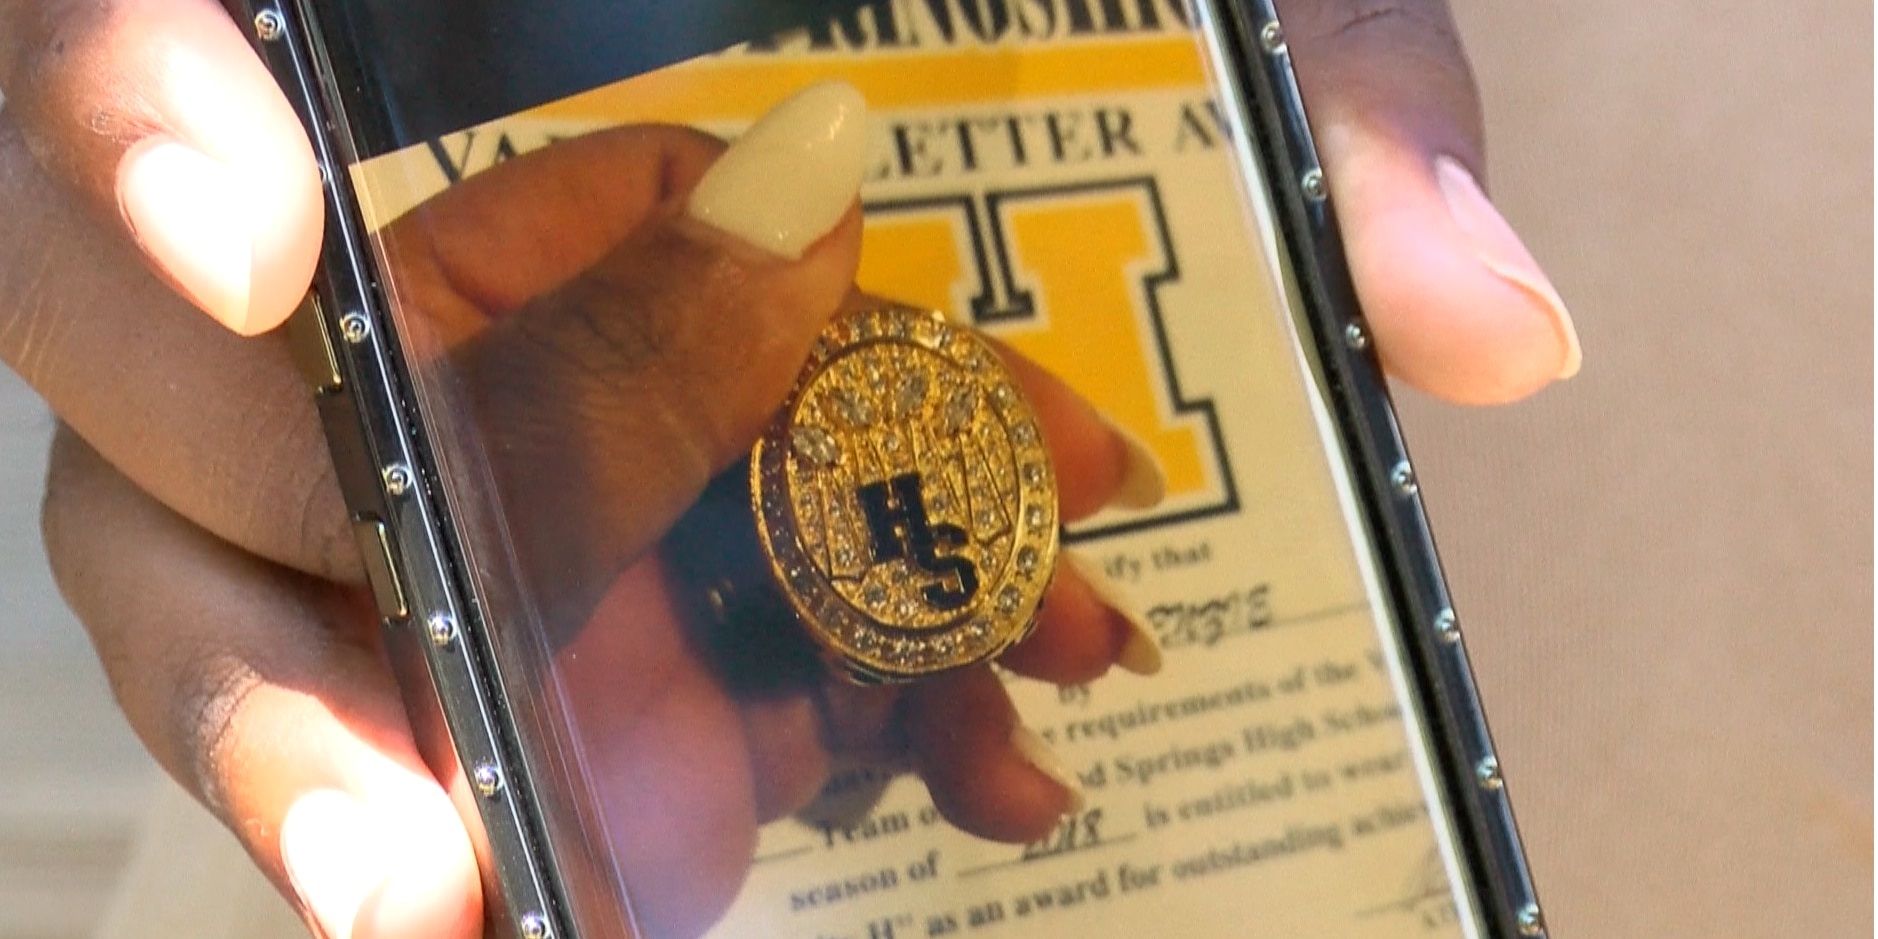 Football player's championship ring stolen out of car